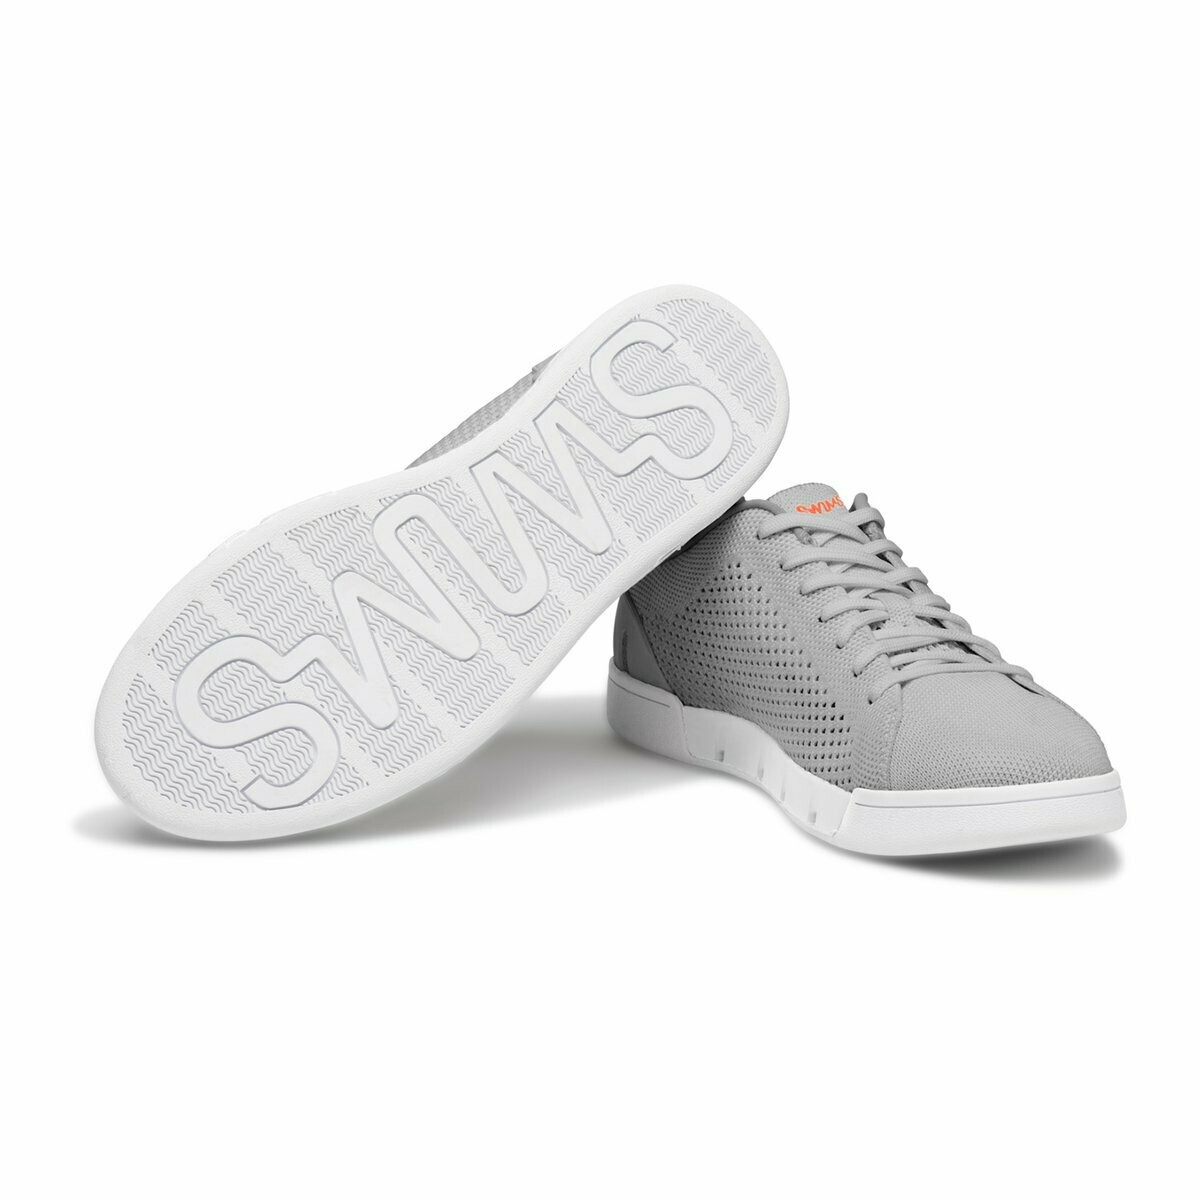 Swims Breeze Tennis Knit in Light Grey and White